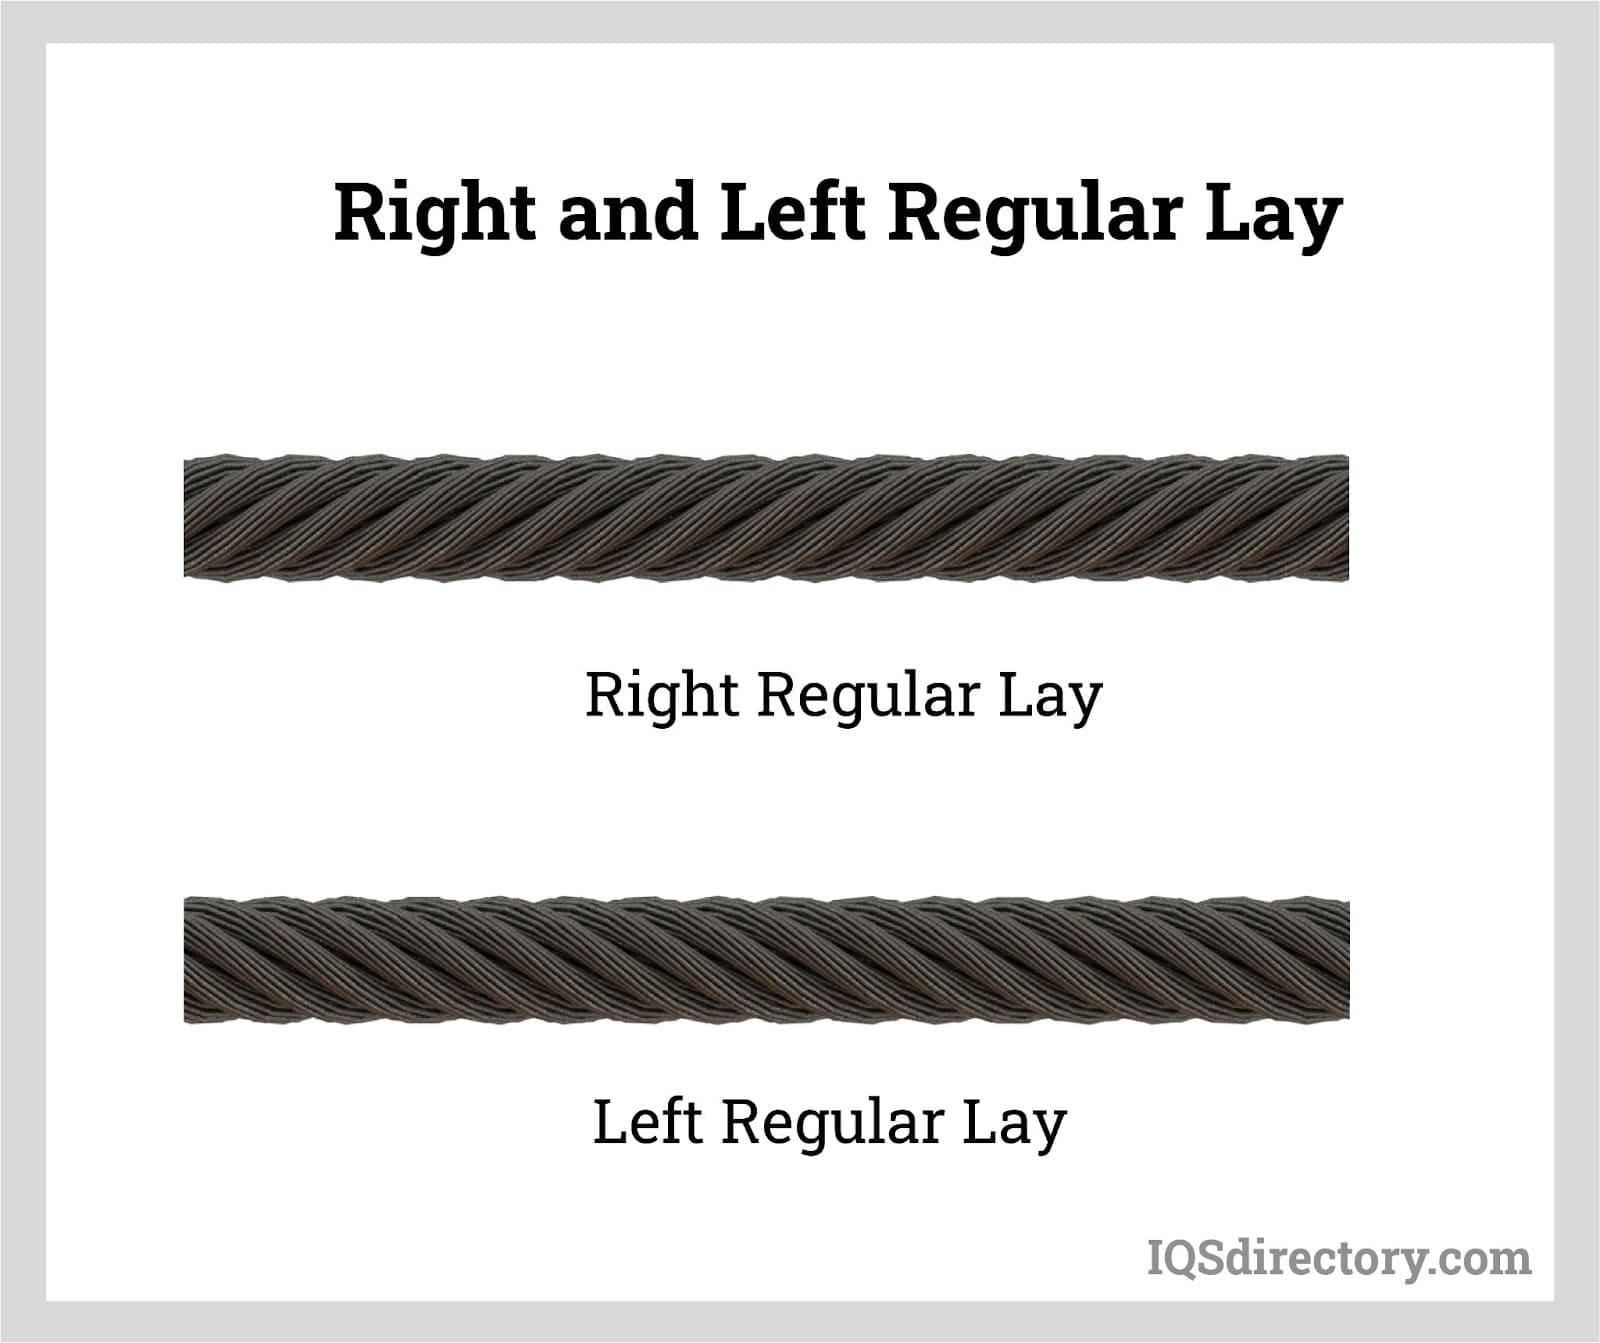 Right and Left and Regular Lay